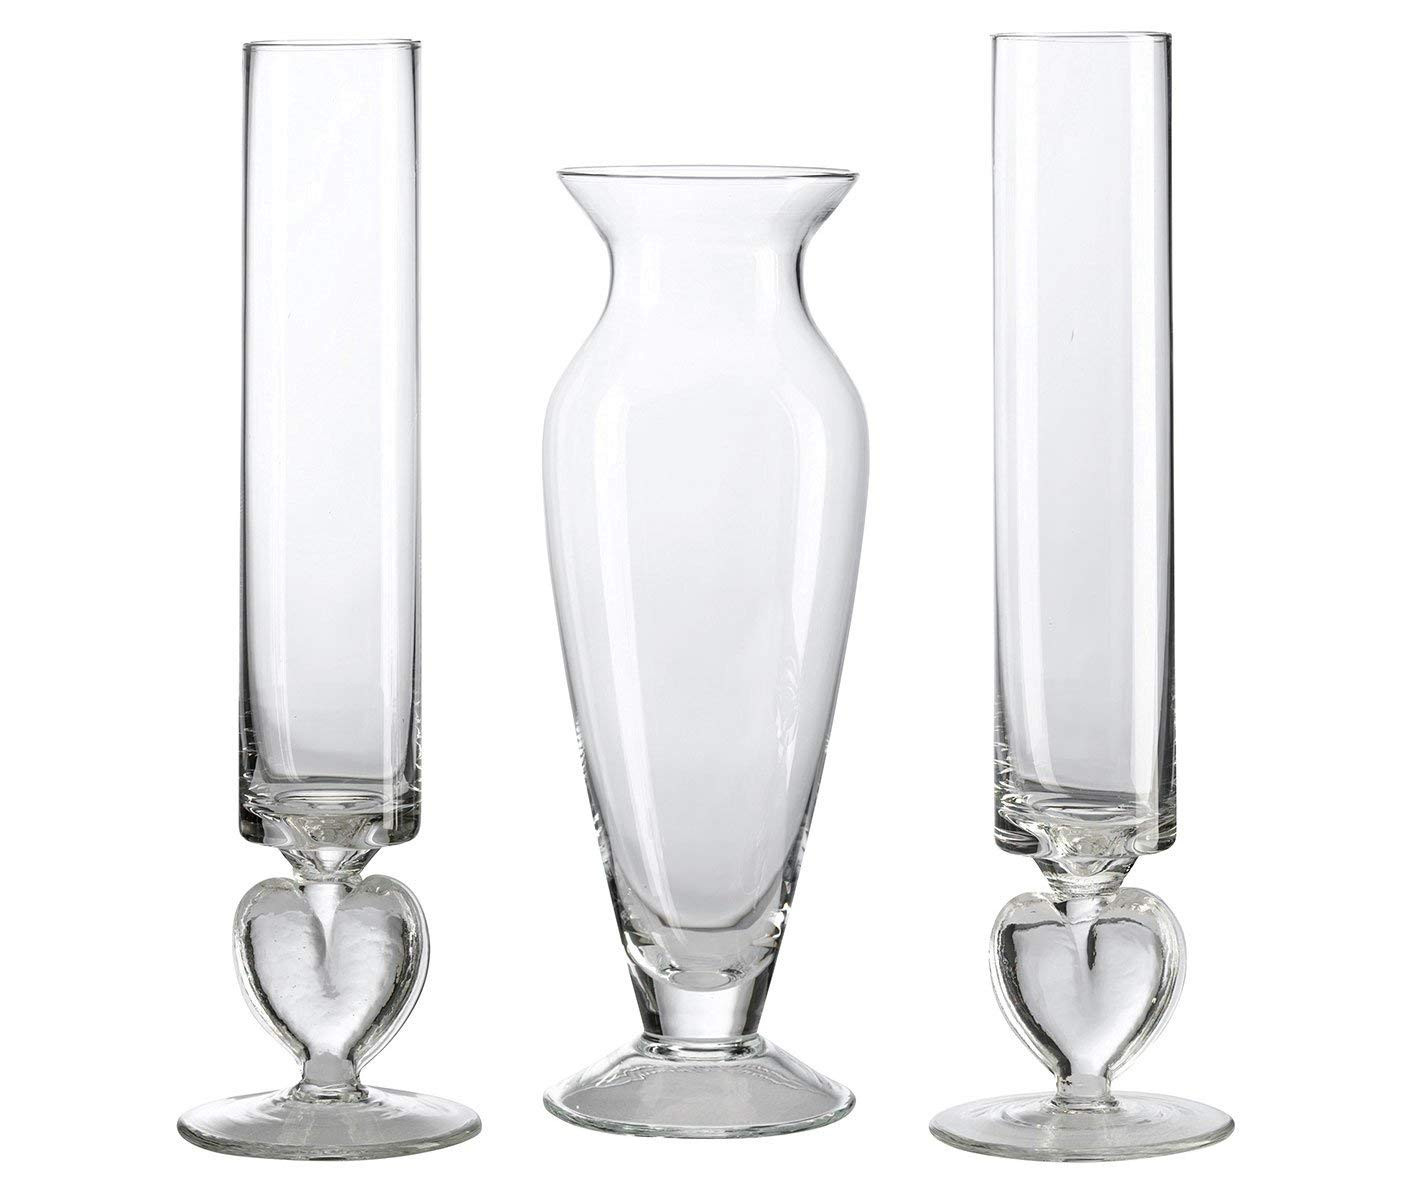 waterford 7 inch vase of amazon com lillian rose unity sand ceremony wedding vase set home with regard to amazon com lillian rose unity sand ceremony wedding vase set home kitchen